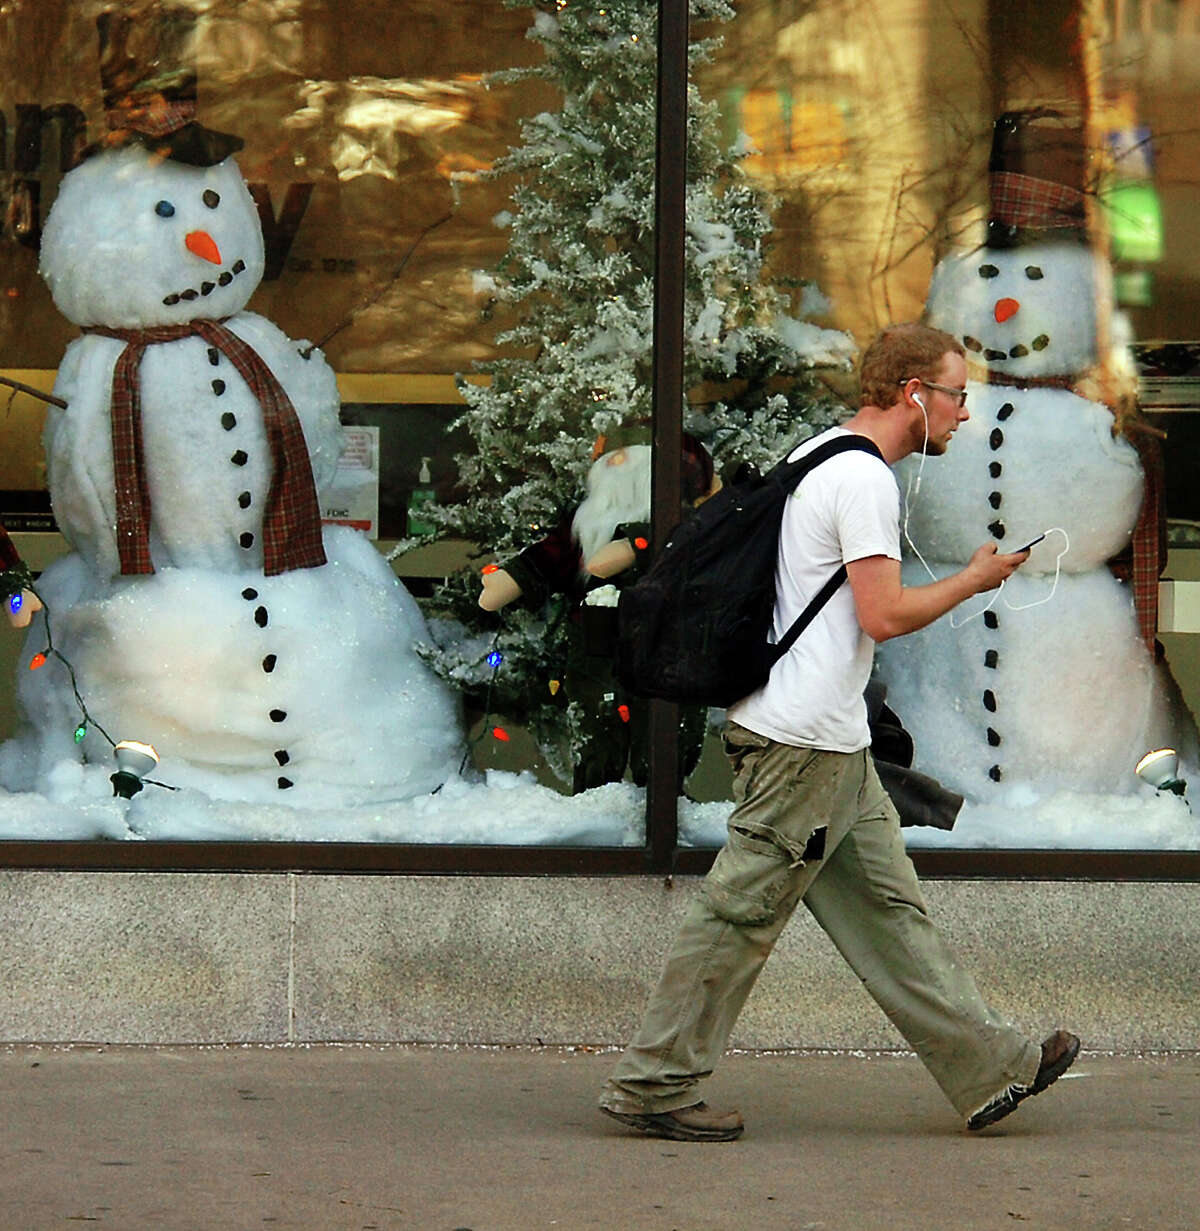 A man walks past a holiday window display during unseasonably warm weather at the Penn Security Bank & Trust building on Spruce Street in downtown Scranton, Pa., on Tuesday, Dec. 4, 2012. (AP Photo/The Scranton Times-Tribune, Butch Comegys)